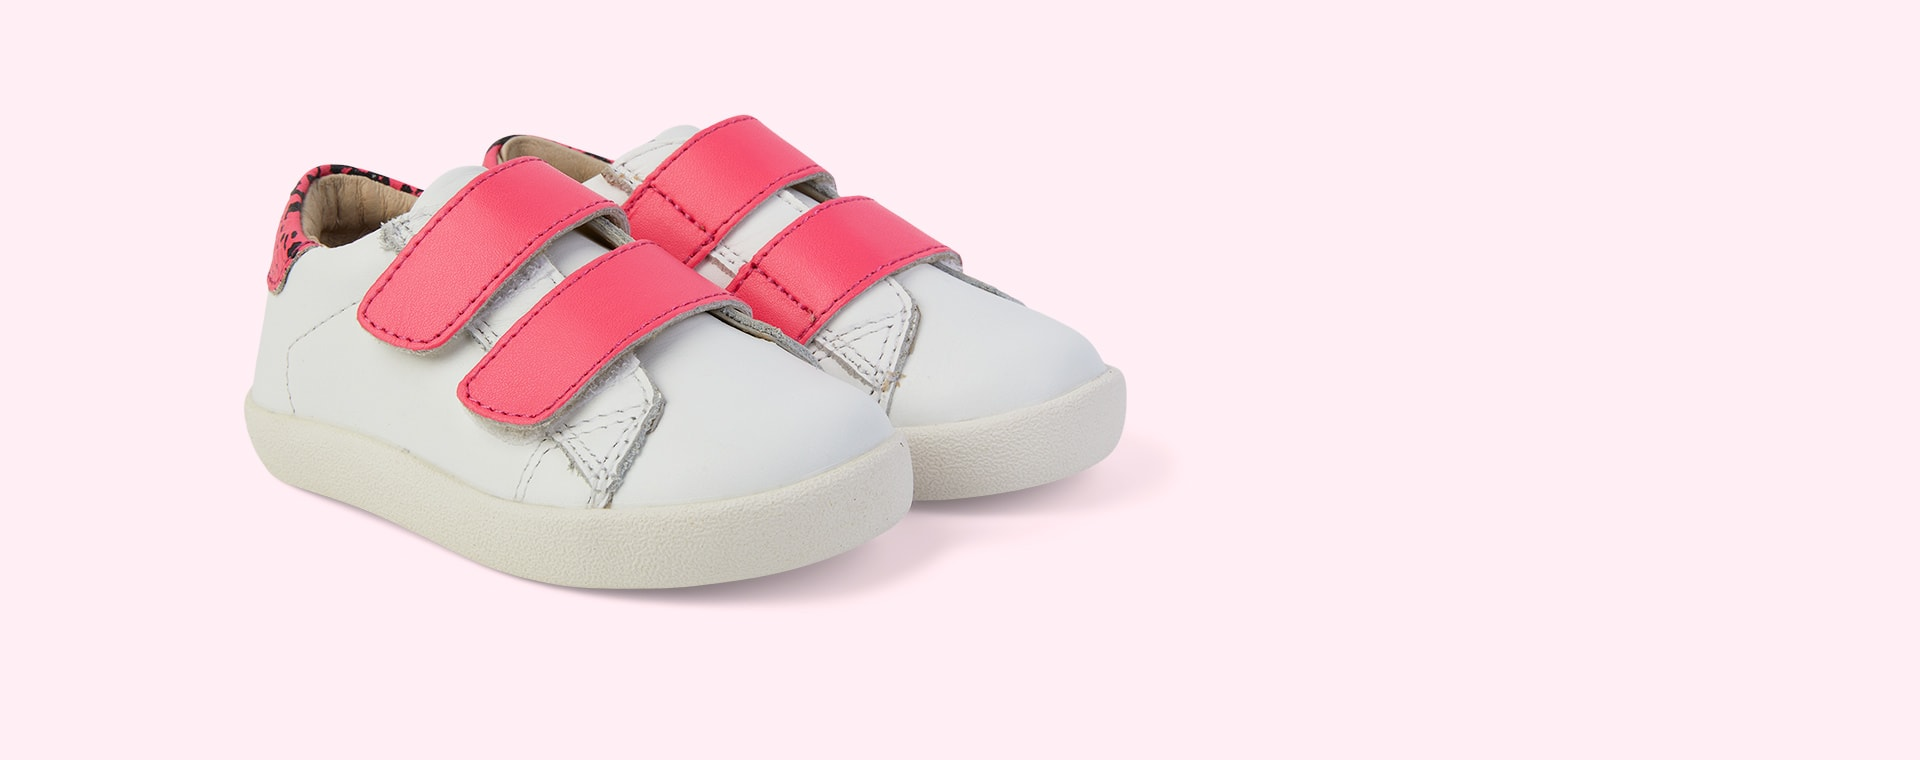 Snow/ Neon Pink Snake/Neon Pink old soles Chime Shoe